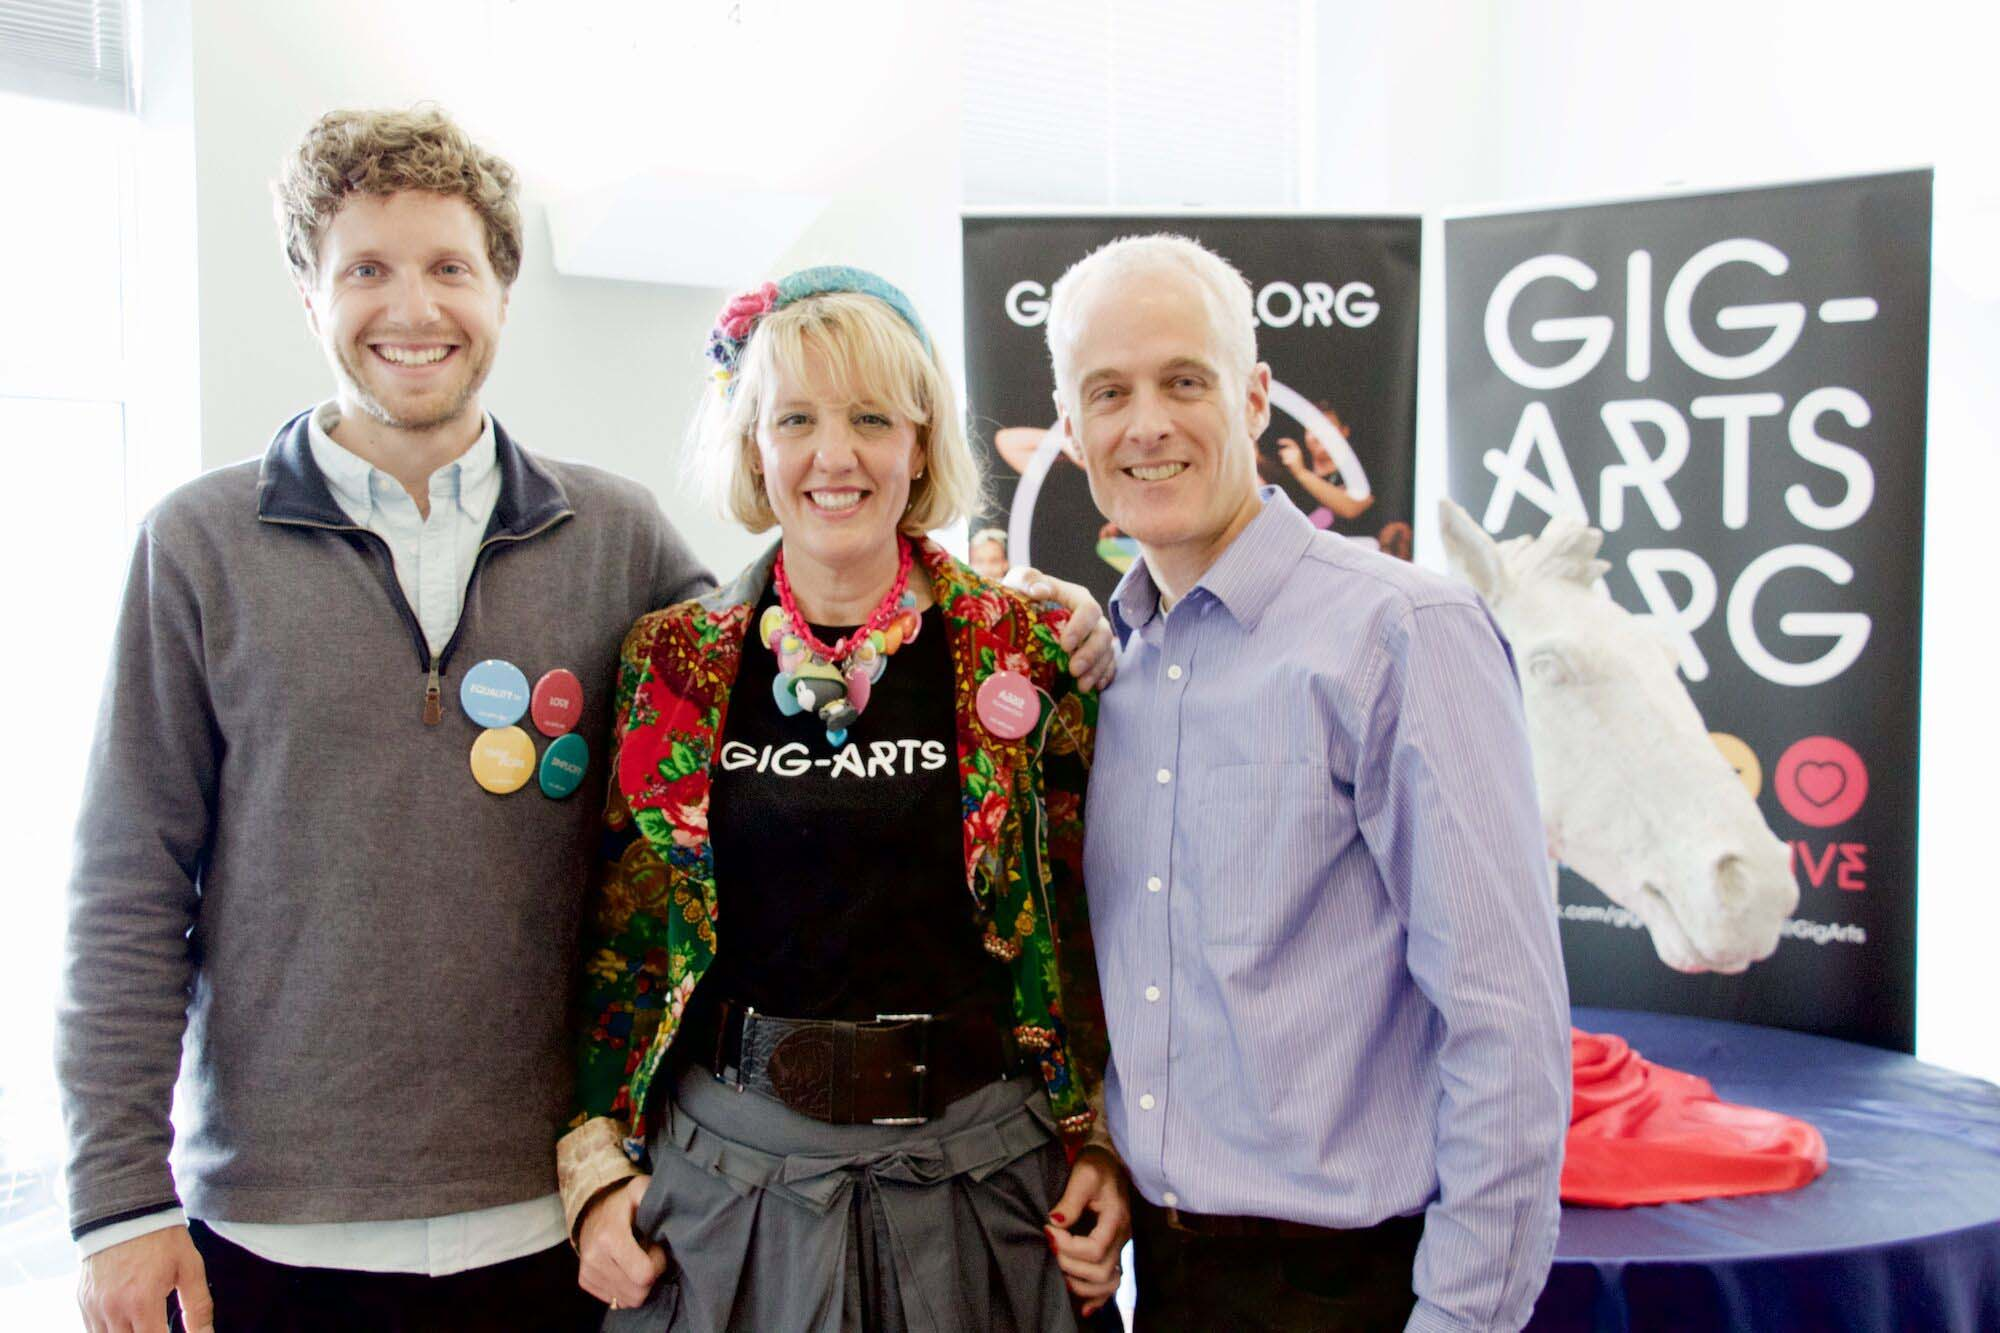 (Left to right) The Gig-Arts Team - Jem Tyer, Abbie Cooke and Rex Boyd